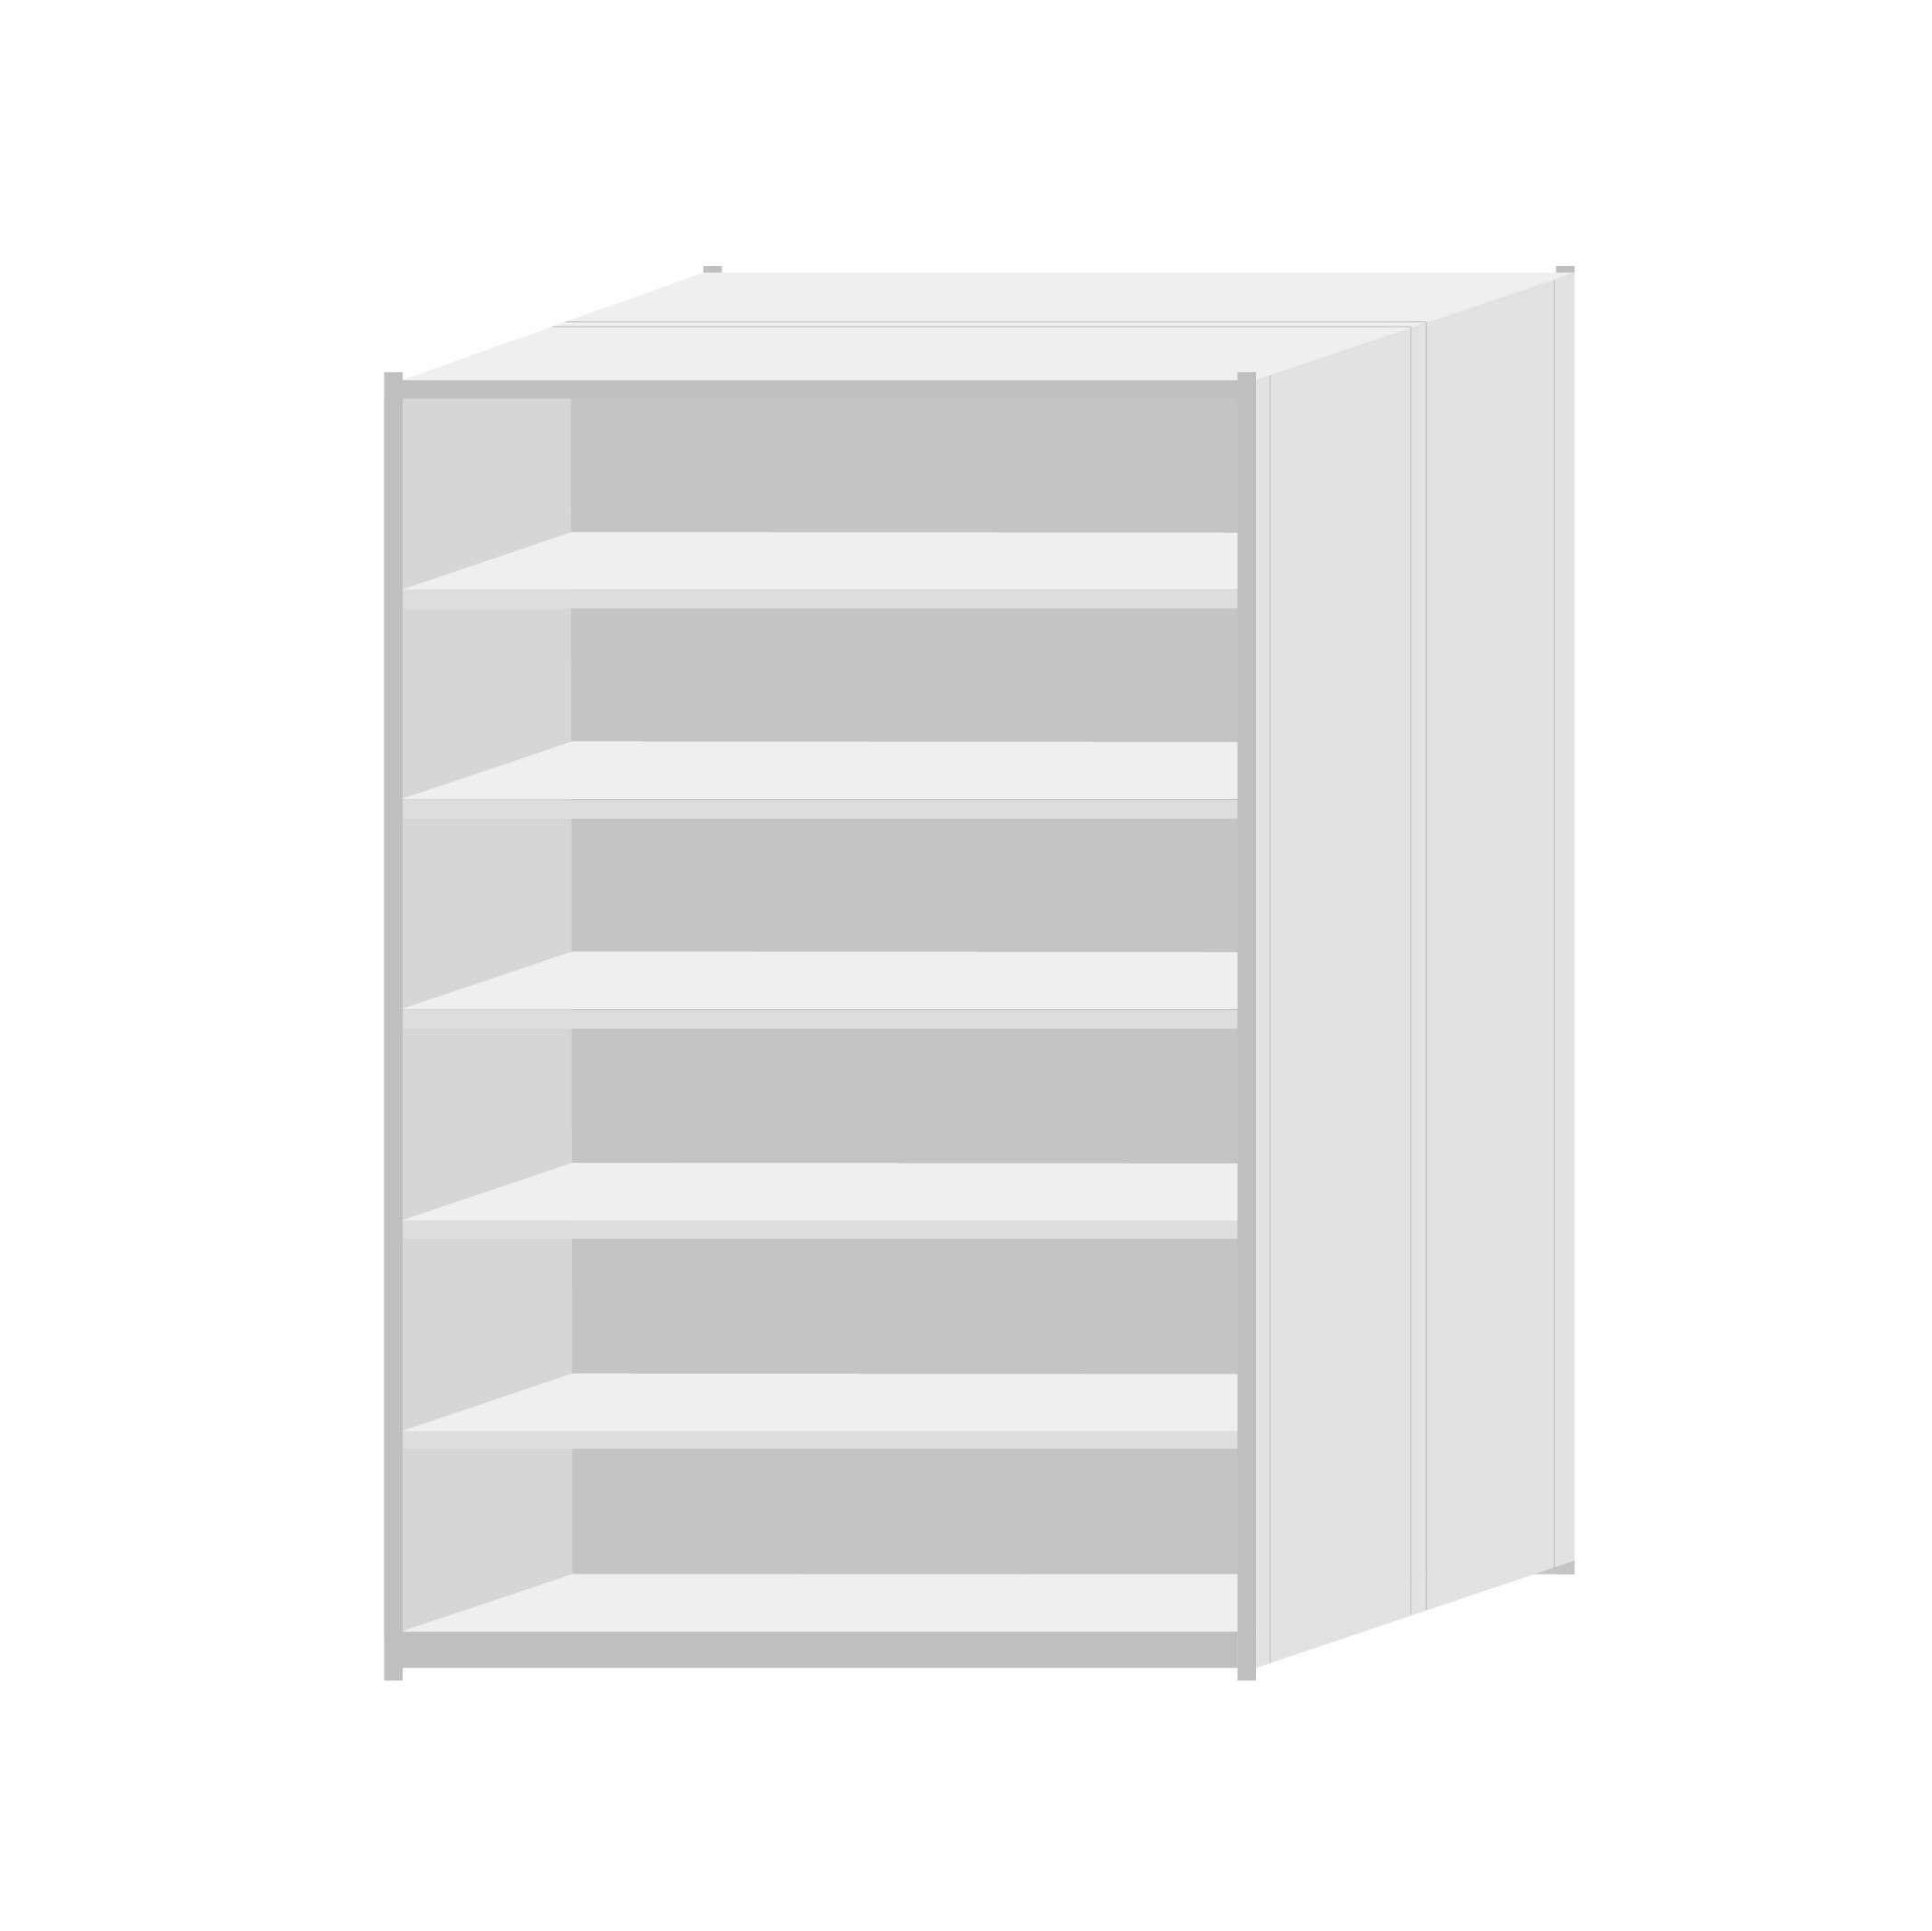 RUT Shelving 1200mm Wide - 7 Levels (Double Sided)